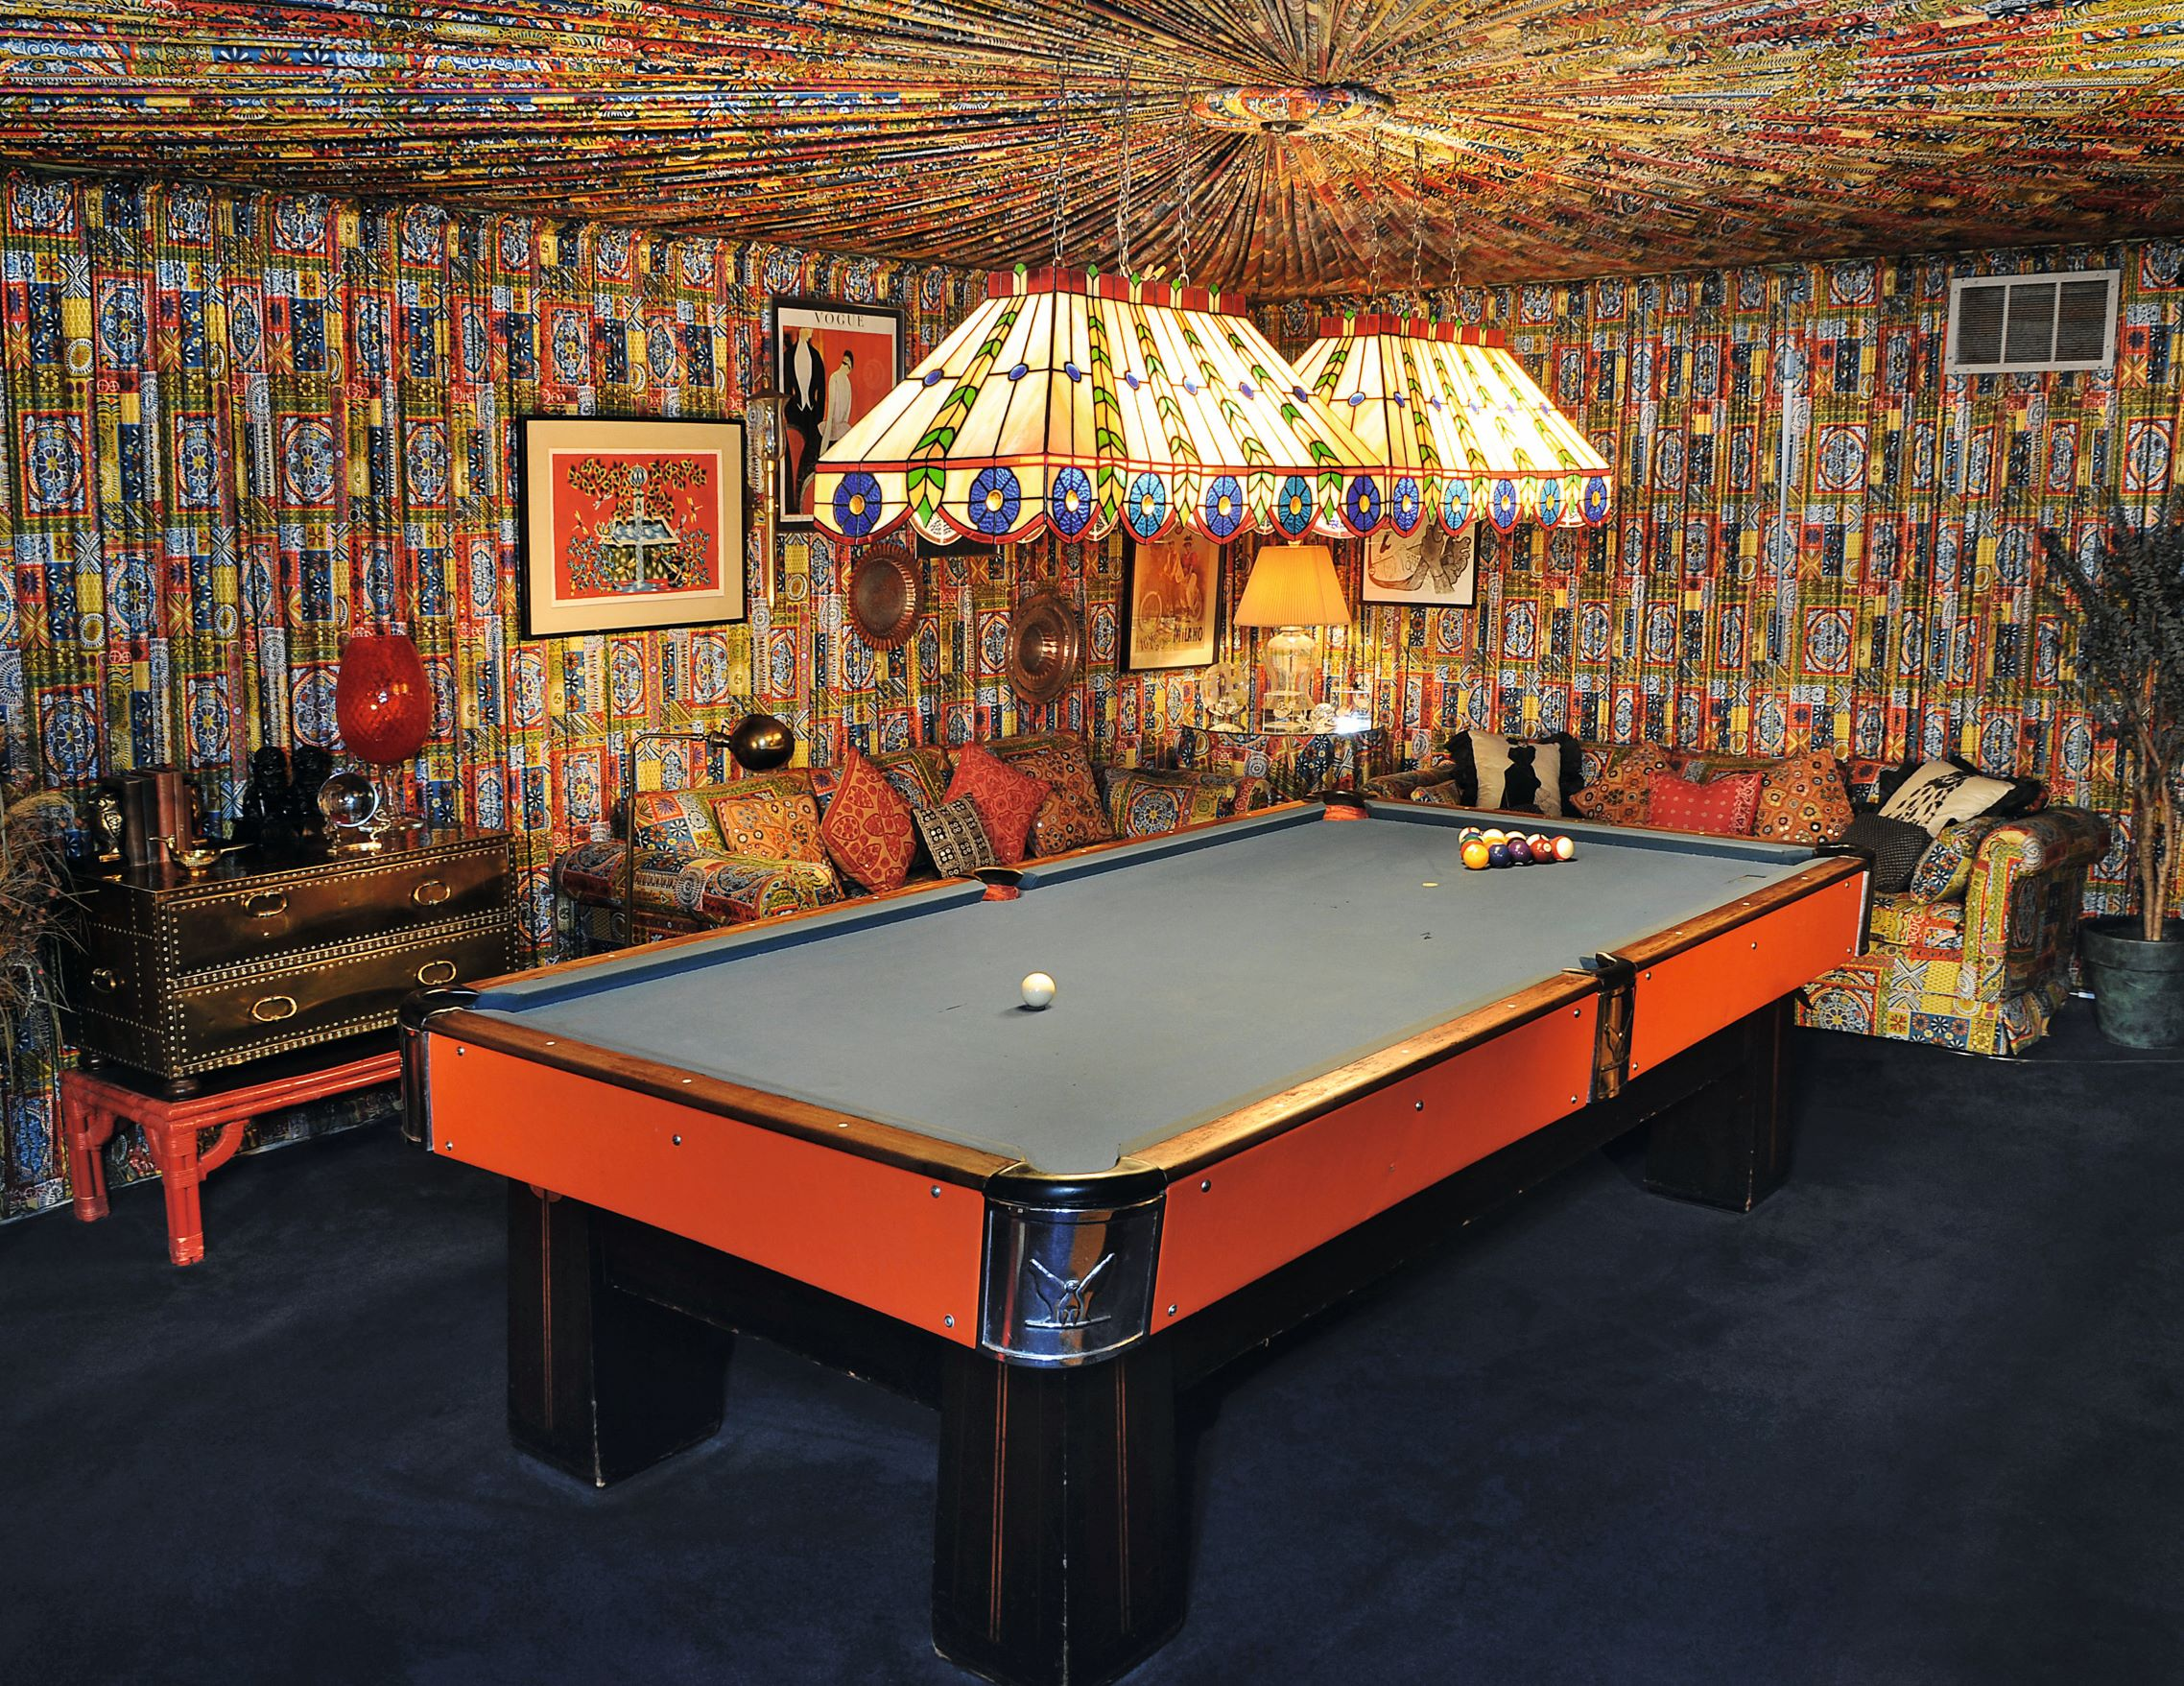 The Pool Room at at Graceland, Memphis, Tennessee, USA. Open to the public. Singer, actor. Courtesy of Elvis Presley Enterprises, Inc